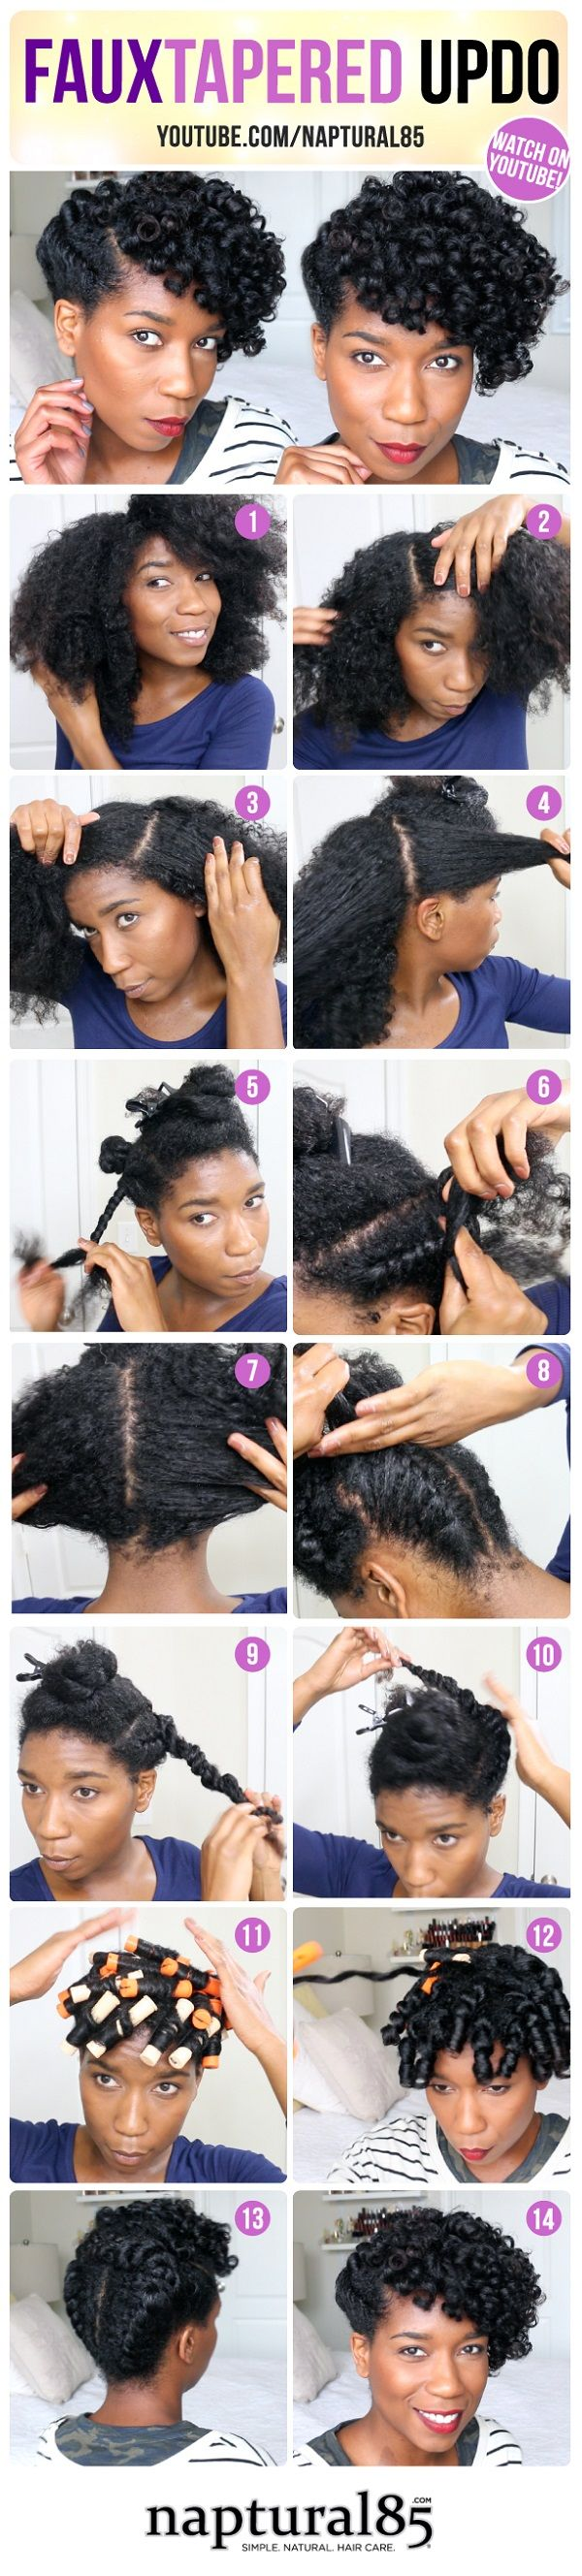 summer protective natural hairstyle faux tapered updo